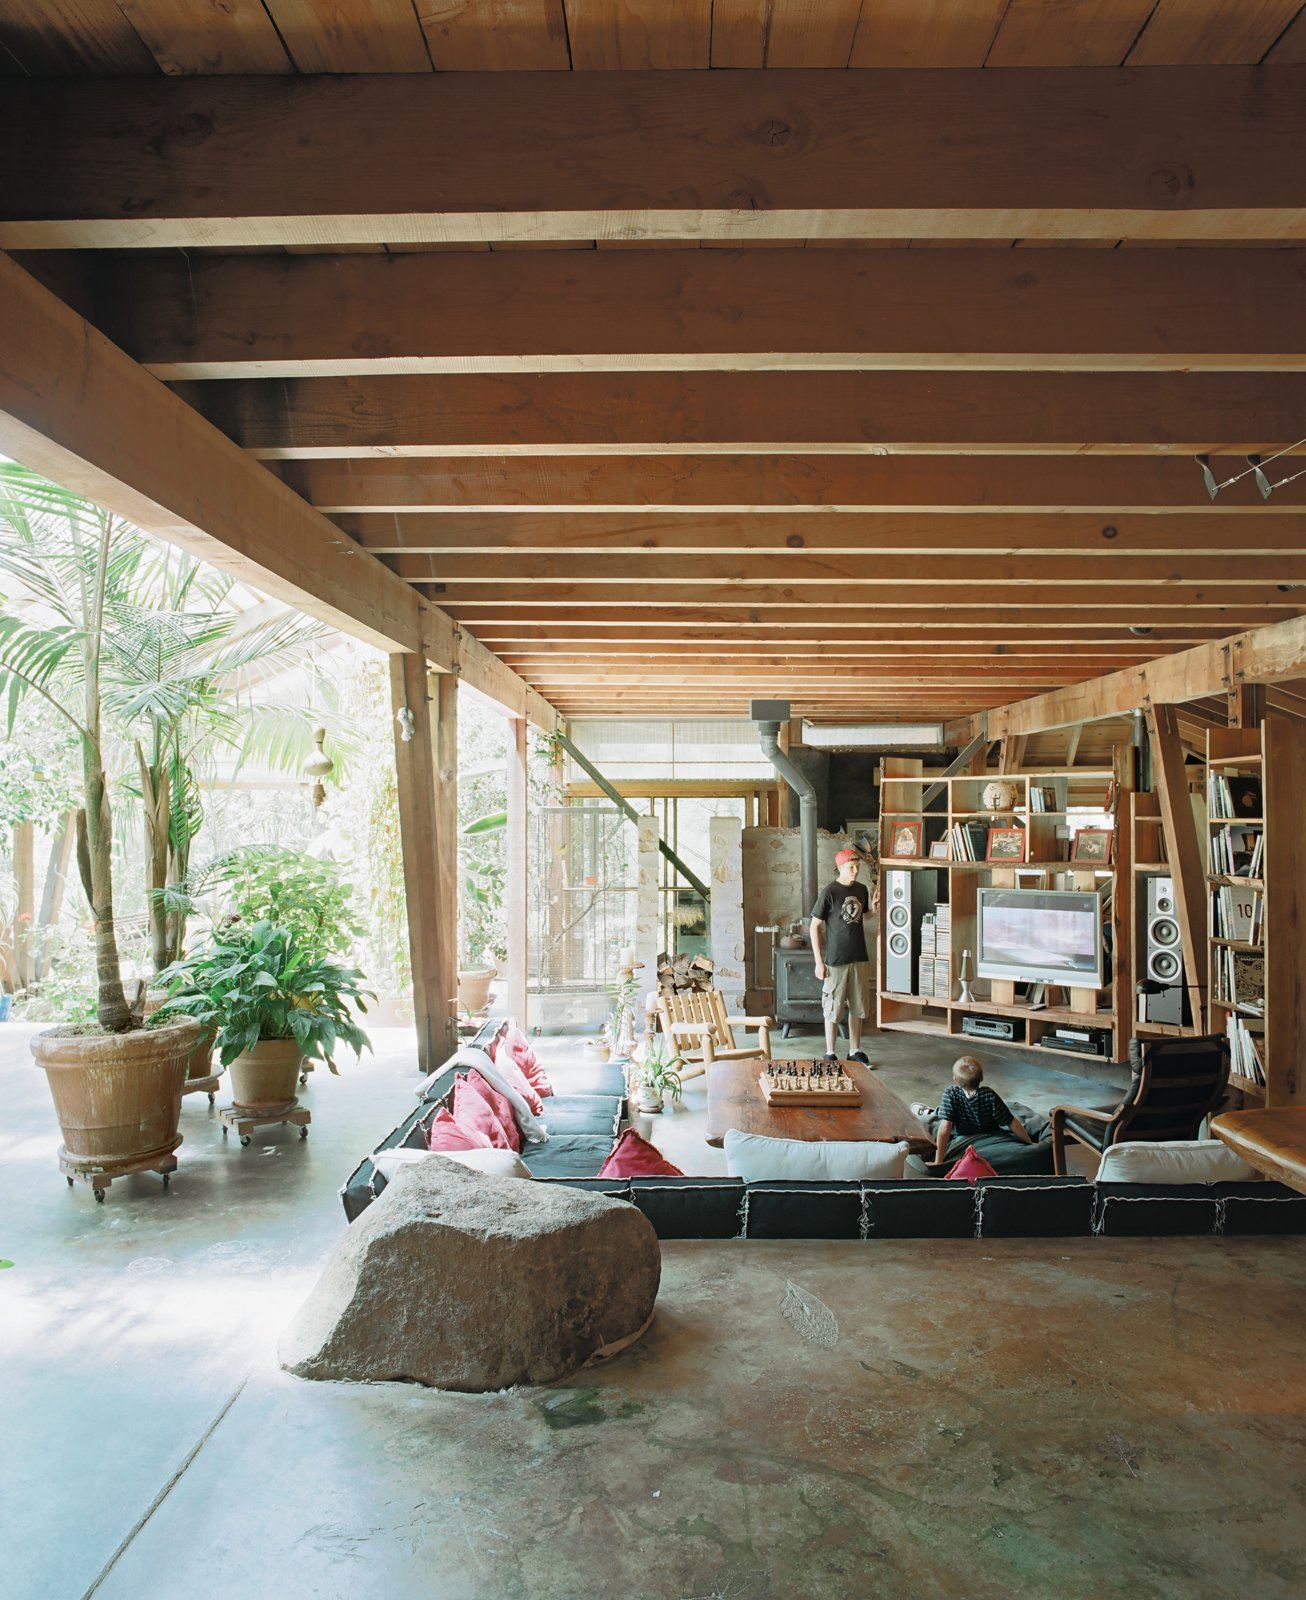 Living Room and Concrete Floor Rocks dug up during construction were saved and incorporated into the poured-concrete floors and walls. Hydronic heating coils in the floor are augmented by a wood stove during the damp winters.  Photo 6 of 13 in Diamond in the Rough (and Ready)